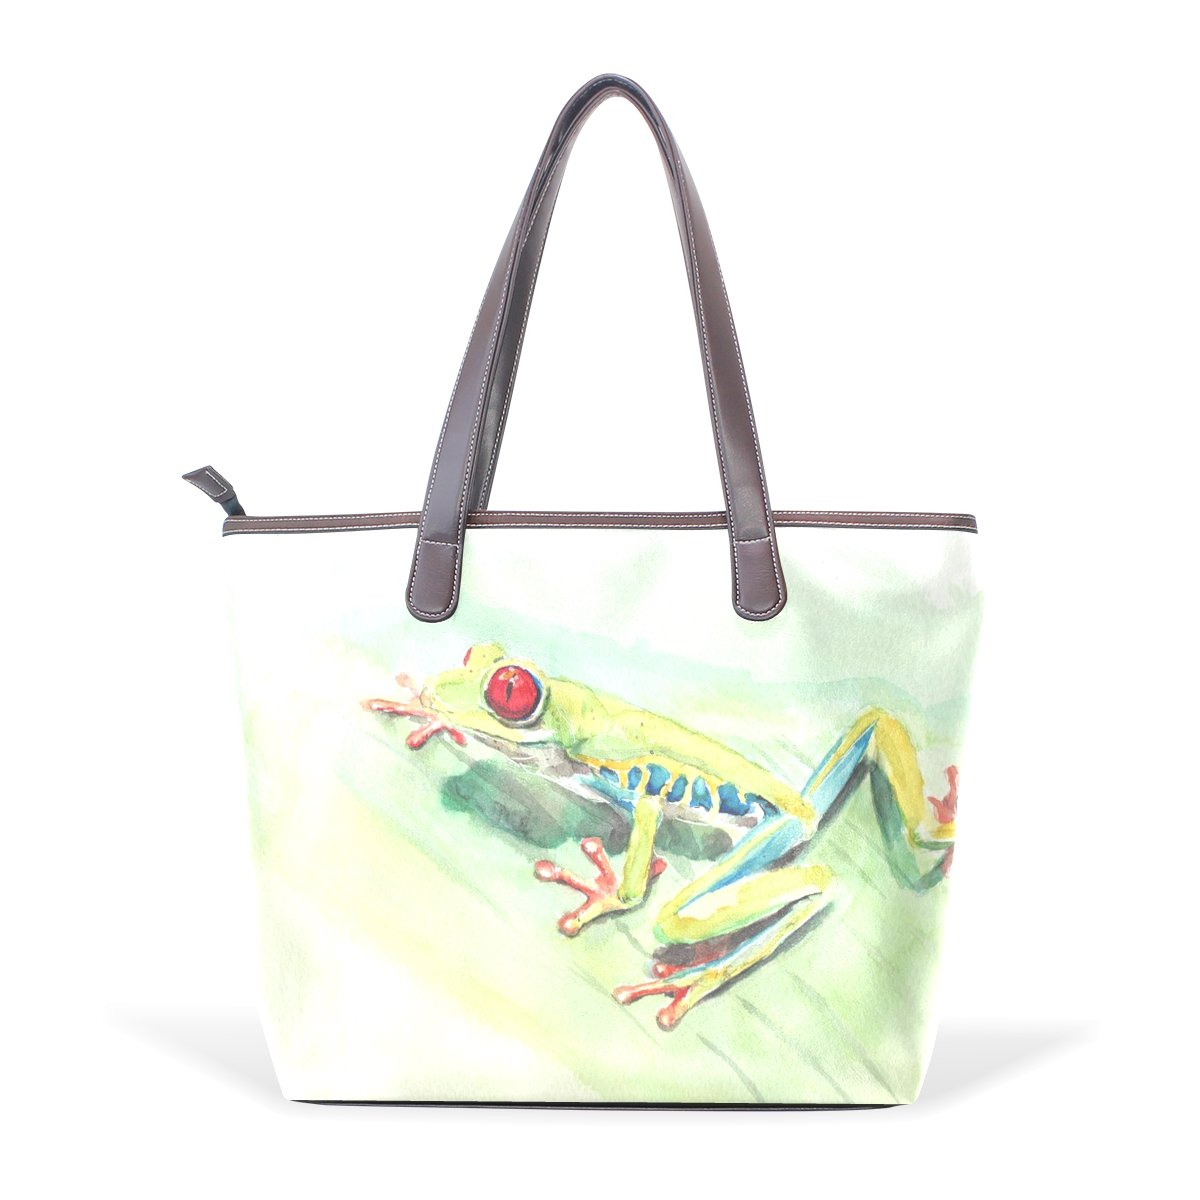 SCDS Painted Green Frogs PU Leather Lady Handbag Tote Bag Zipper Shoulder Bag